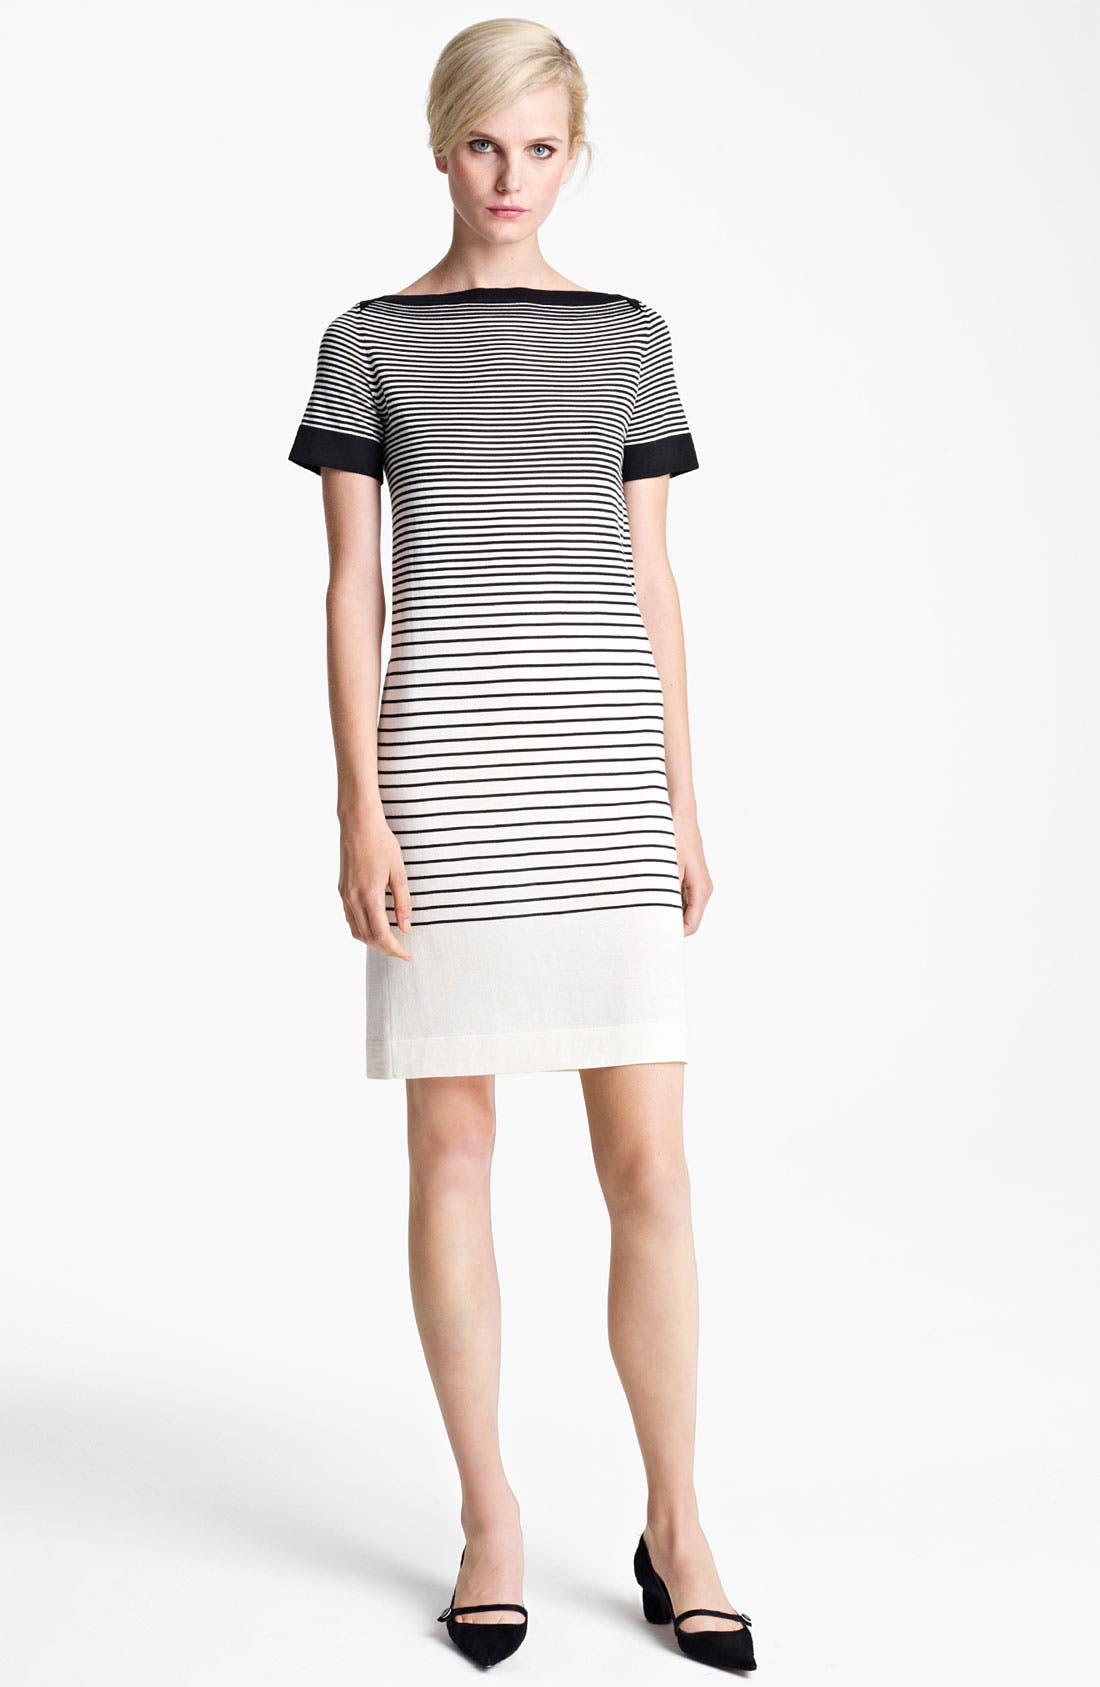 Alternate Image 1 Selected - MARC JACOBS Stripe Short Sleeve Dress